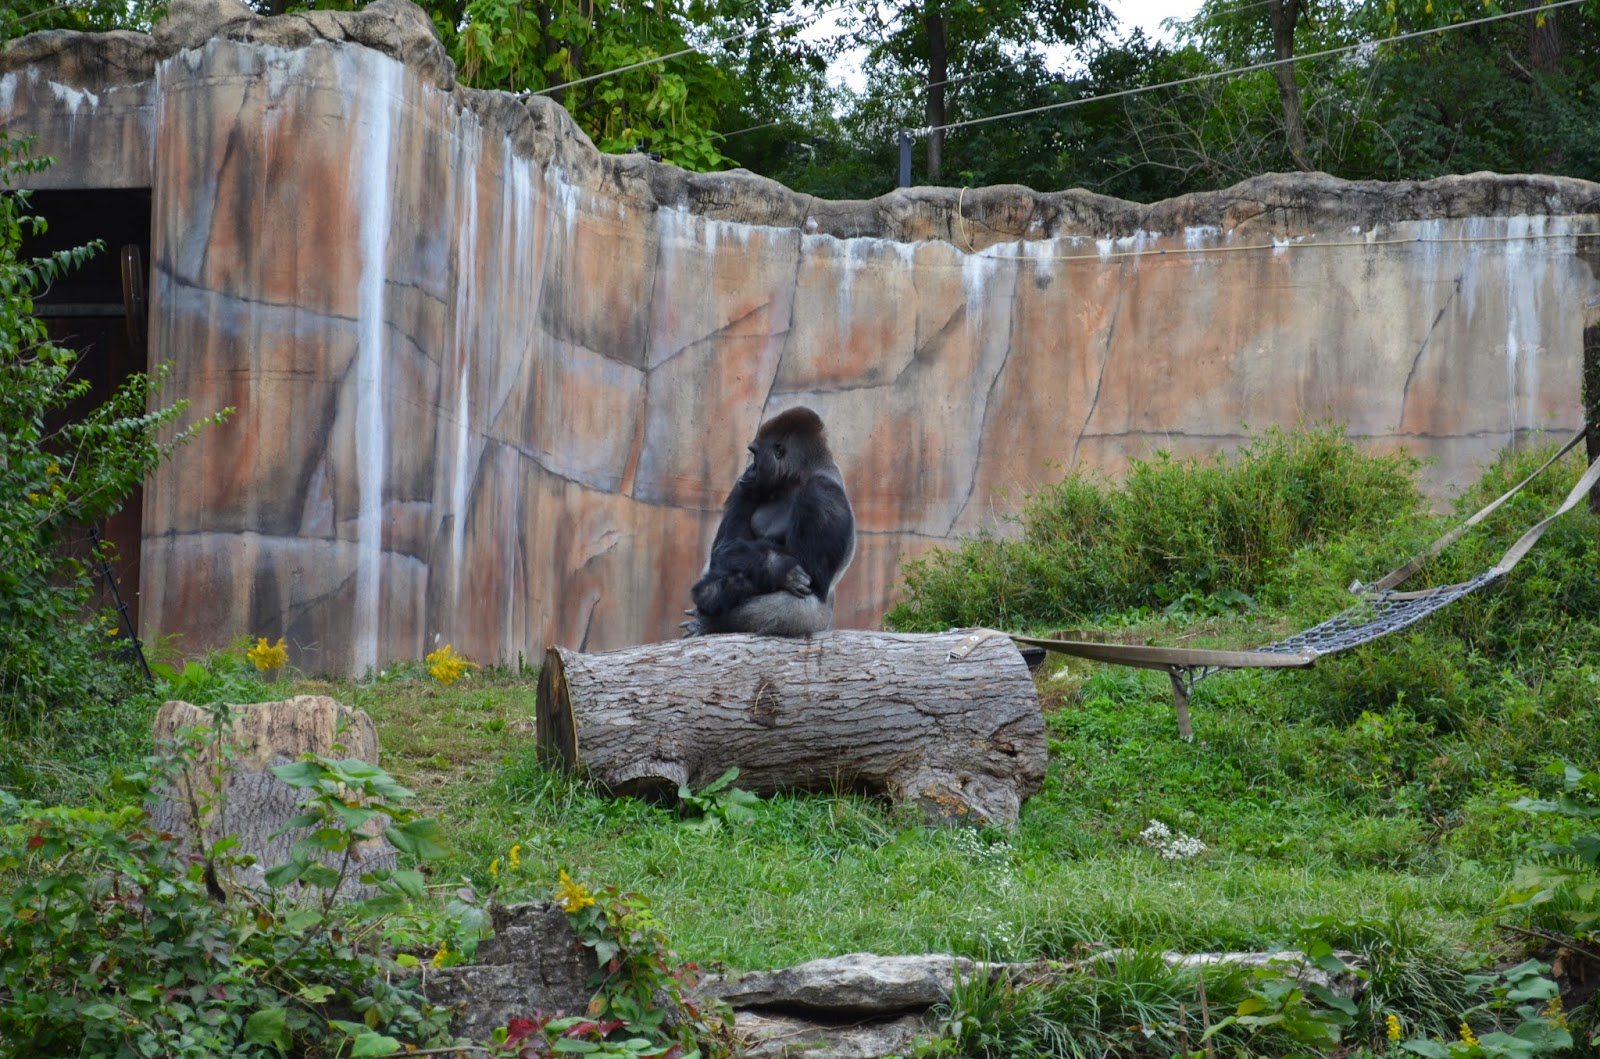 Hanging out at the St. Louis Zoo! #zoo #travel #stlouis